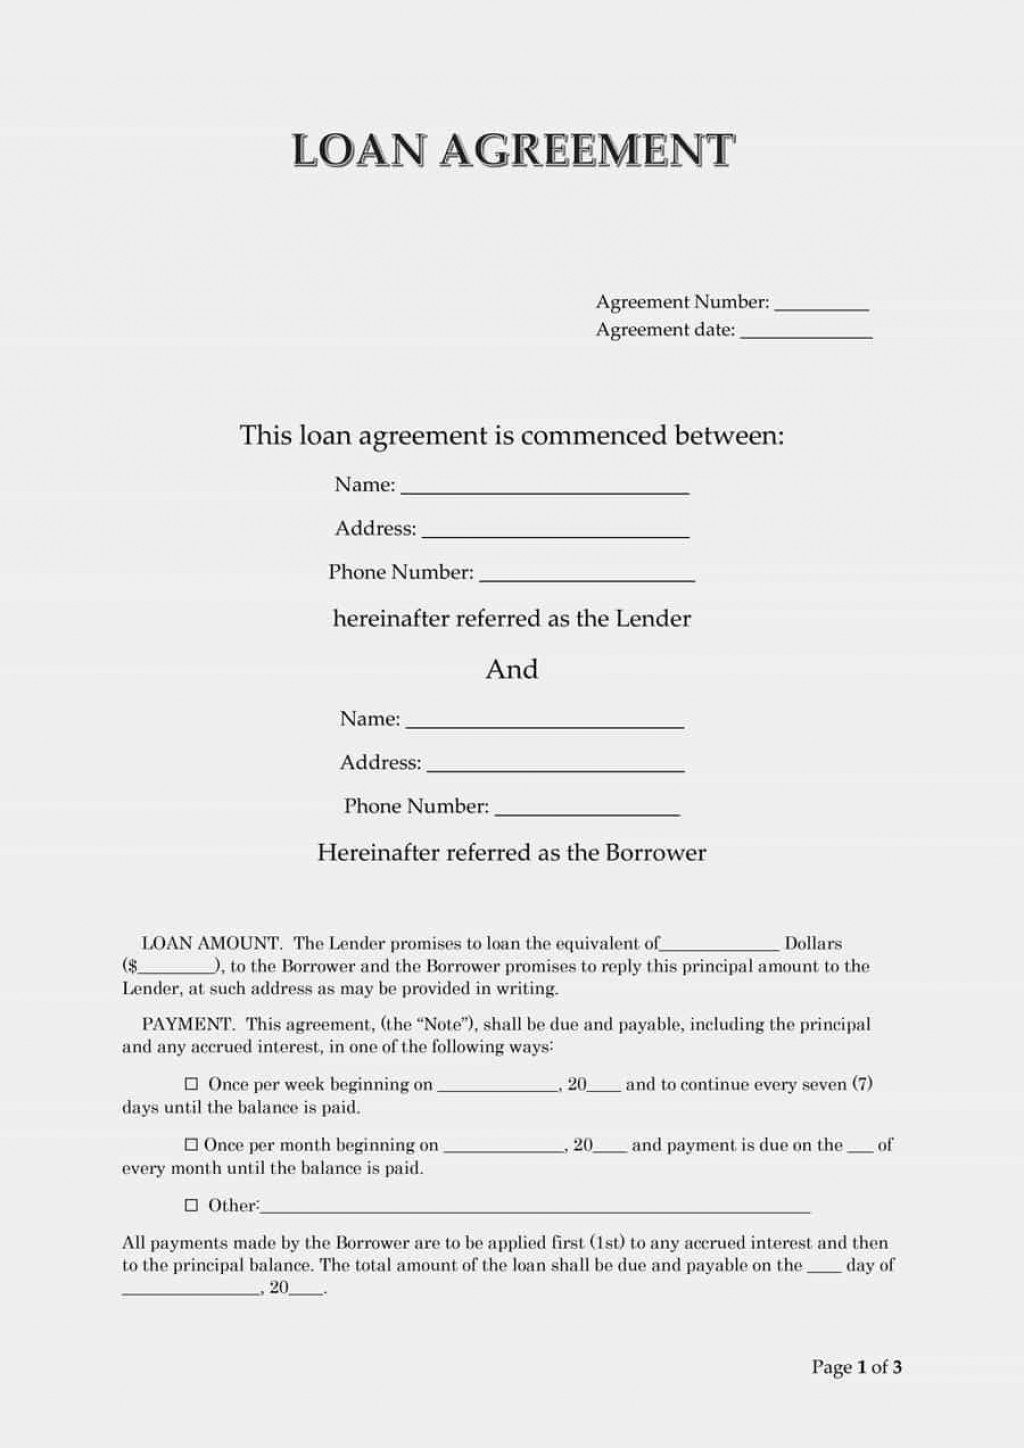 007 Outstanding Simple Loan Agreement Template Word High Def  Format Personal MicrosoftLarge